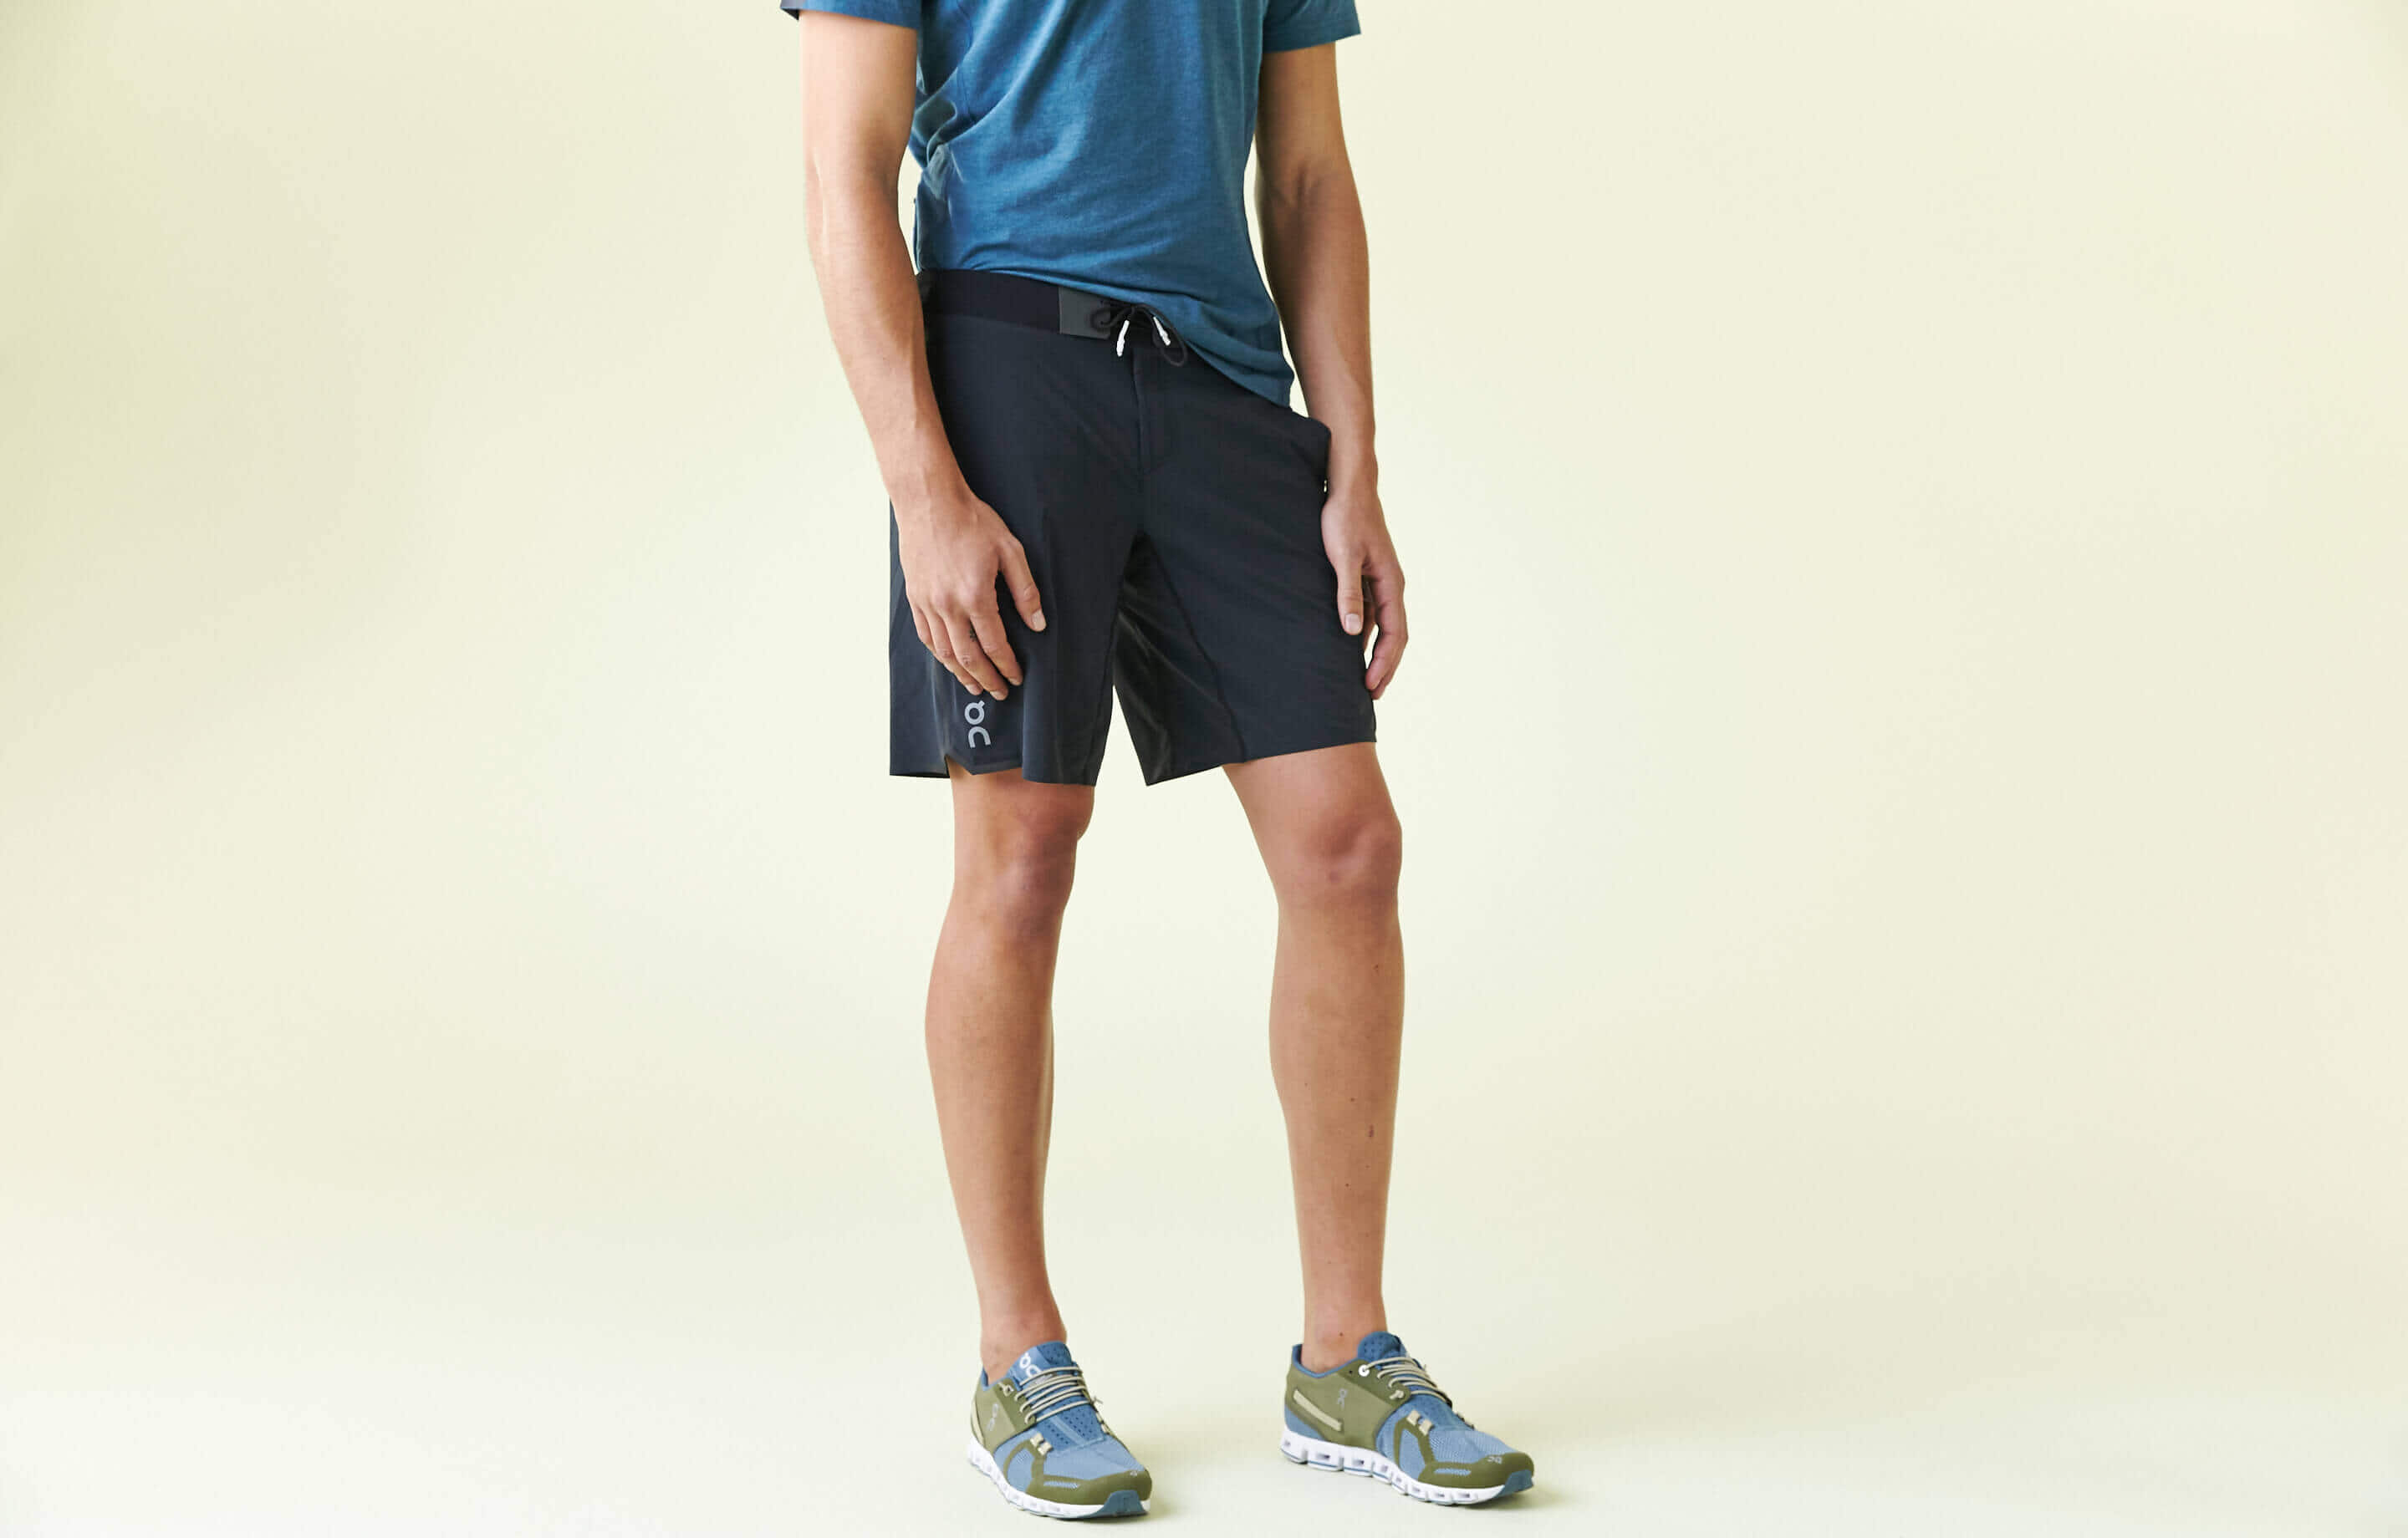 152f26b1e8 Hybrid Shorts - Combined running shorts & tights for men | On